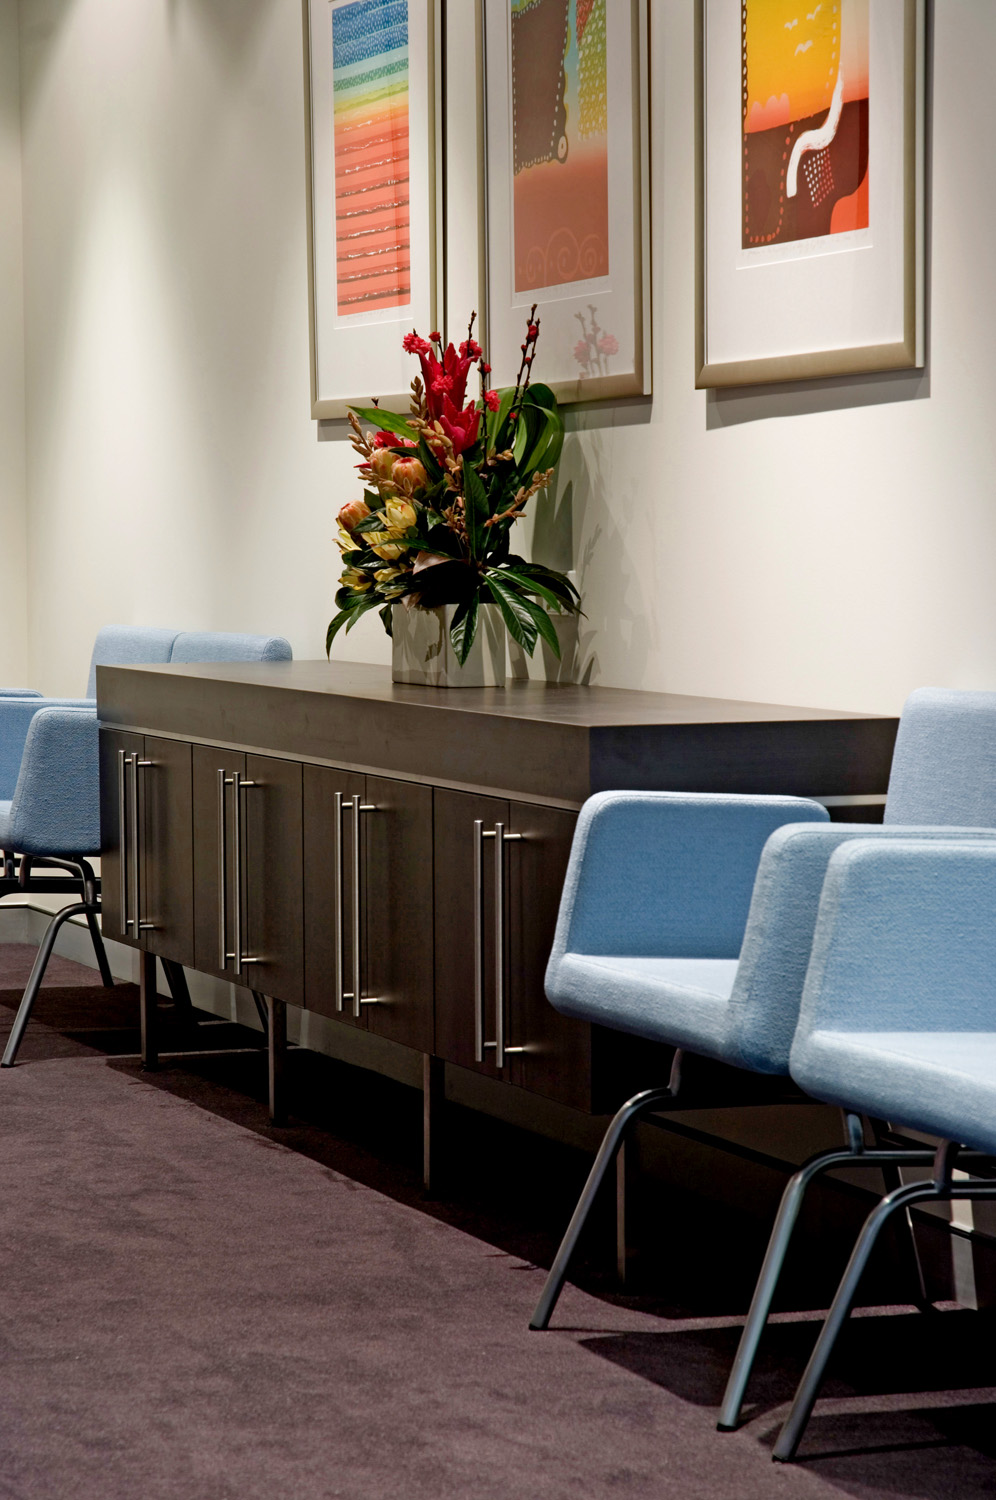 Commercial Office Fitouts + Sydney + Interior Design + Project Management Oztam